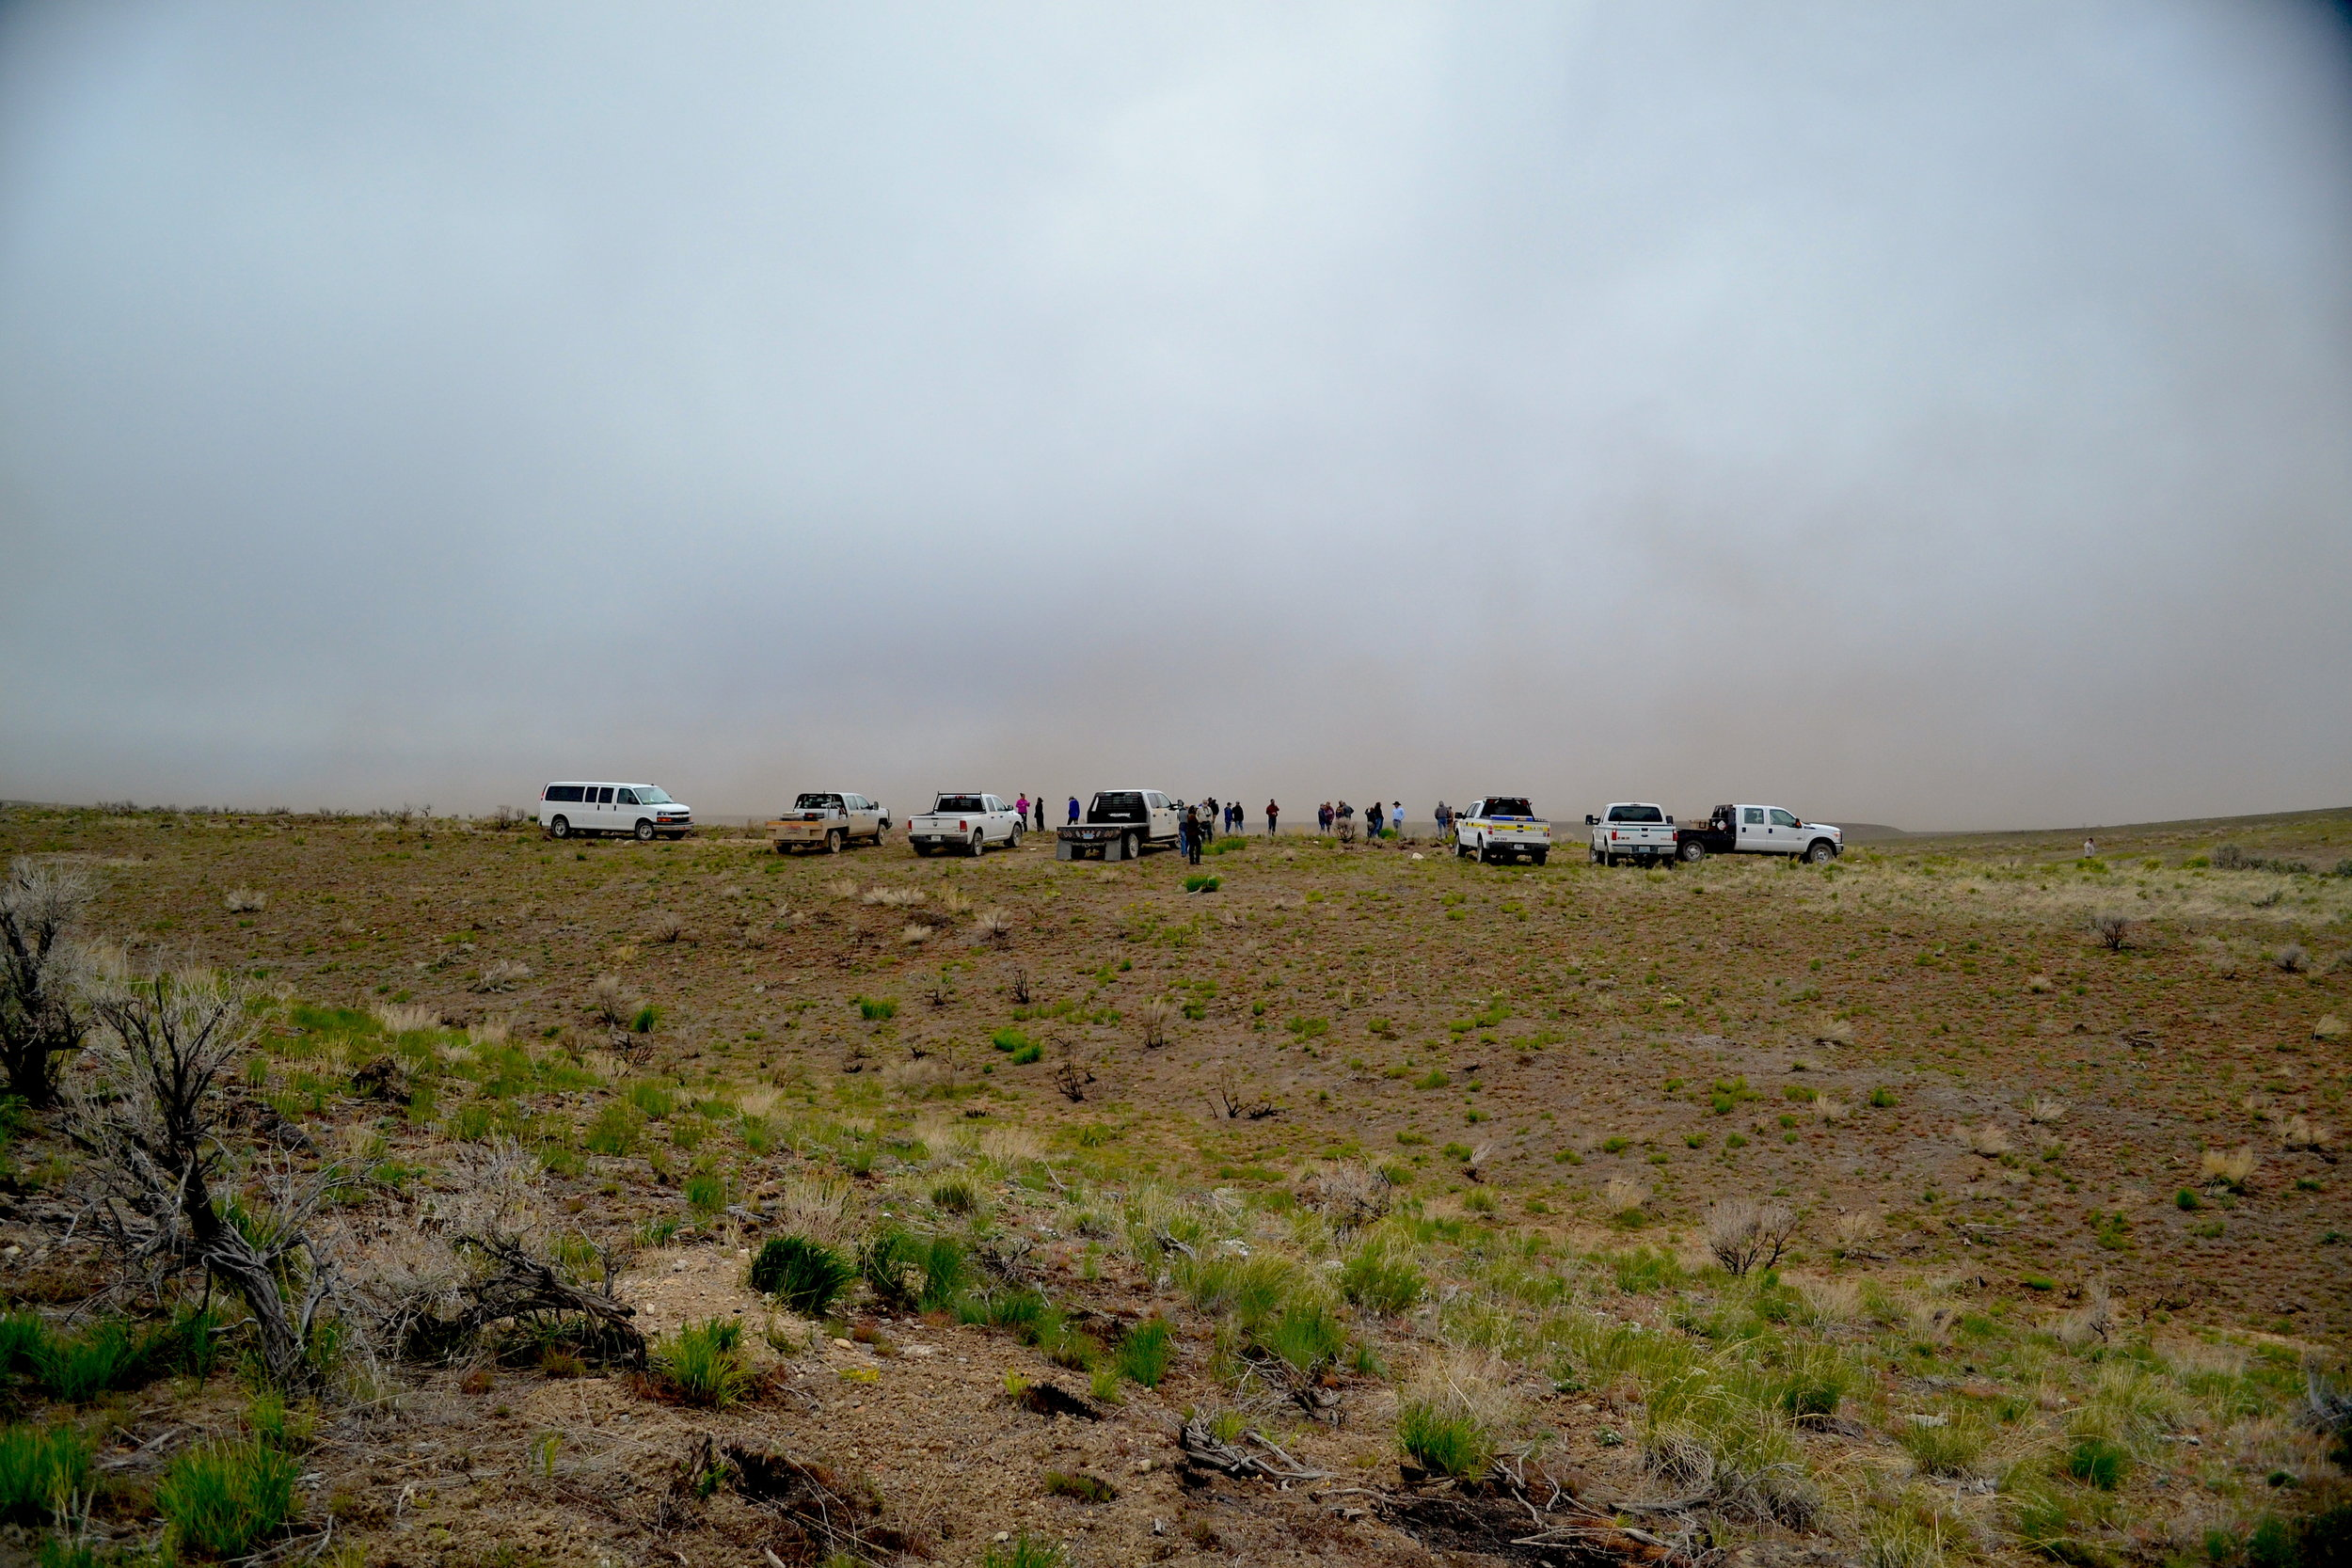 While visiting the 2018 Martin Fire scar, a large windstorm lifted topsoil and ash in the air and pelted the tour's attendees. Matt Murphy, BLM Elko Acting Fire Management Officer, said these winds were similar to those that pushed the Martin Fire to burn 435,000 acres in just a few days.